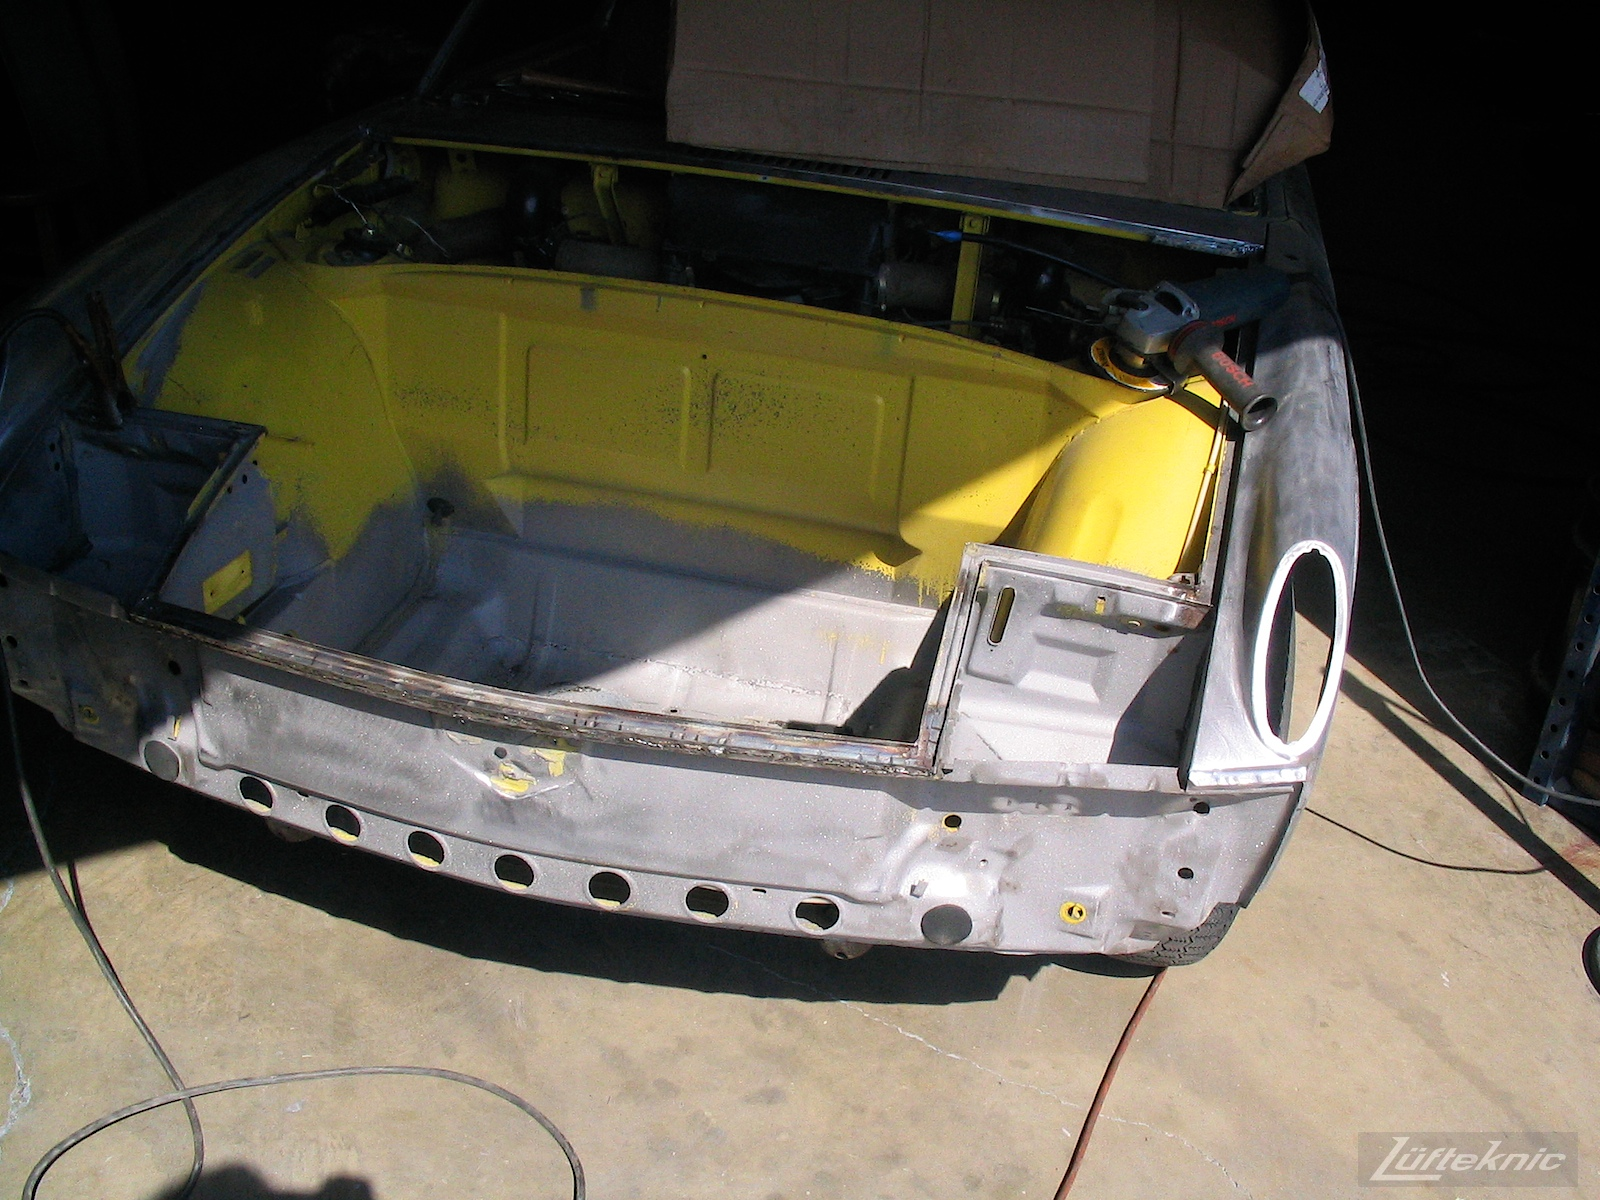 Front chassis pan repair on a yellow Porsche 914 being repaired.